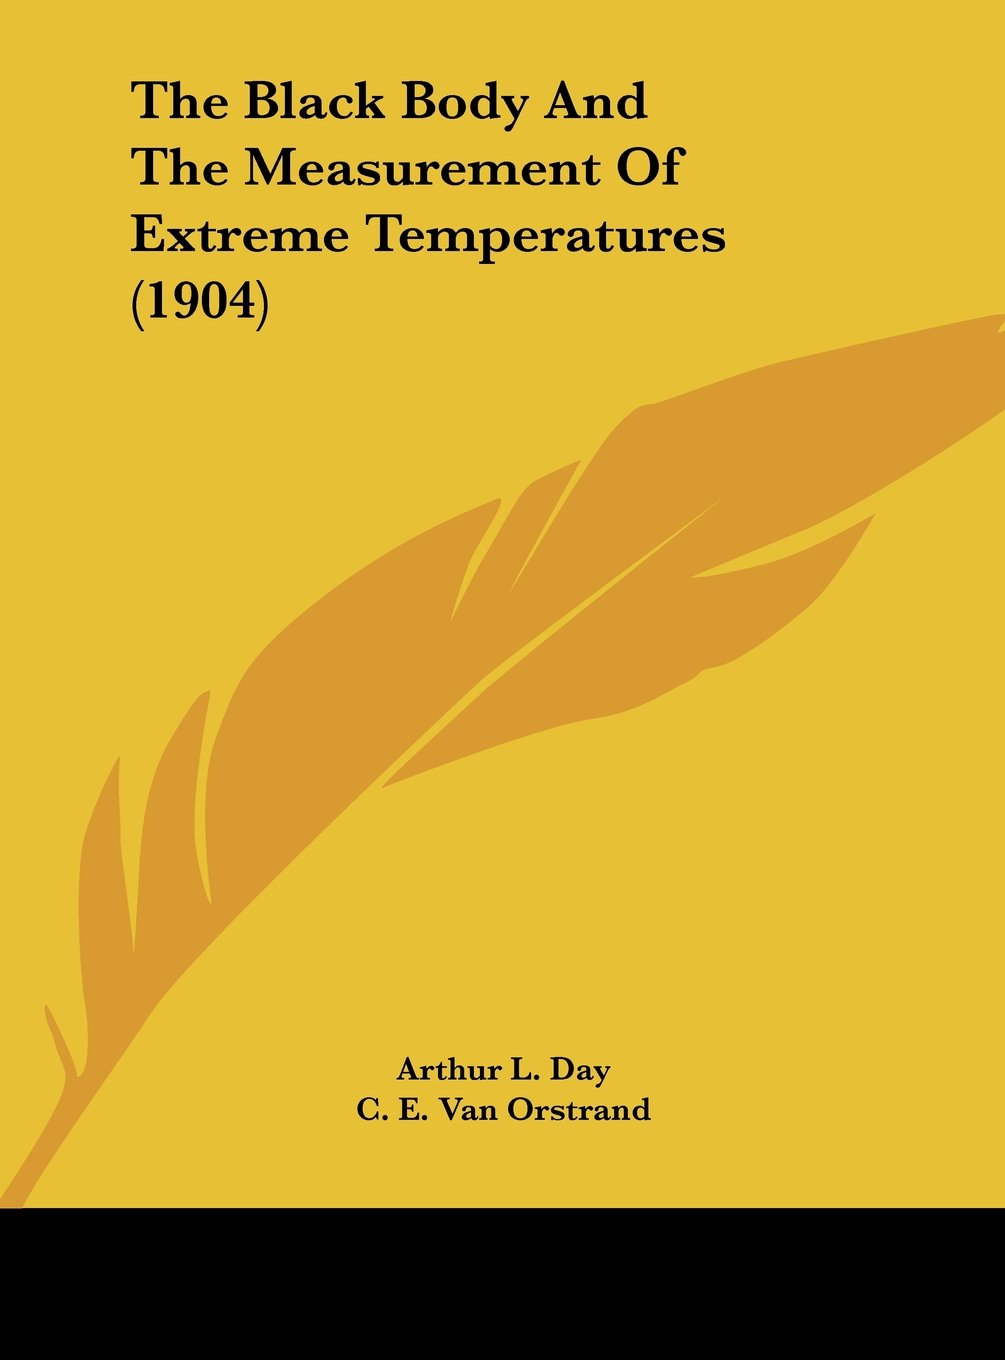 Download The Black Body And The Measurement Of Extreme Temperatures (1904) ebook